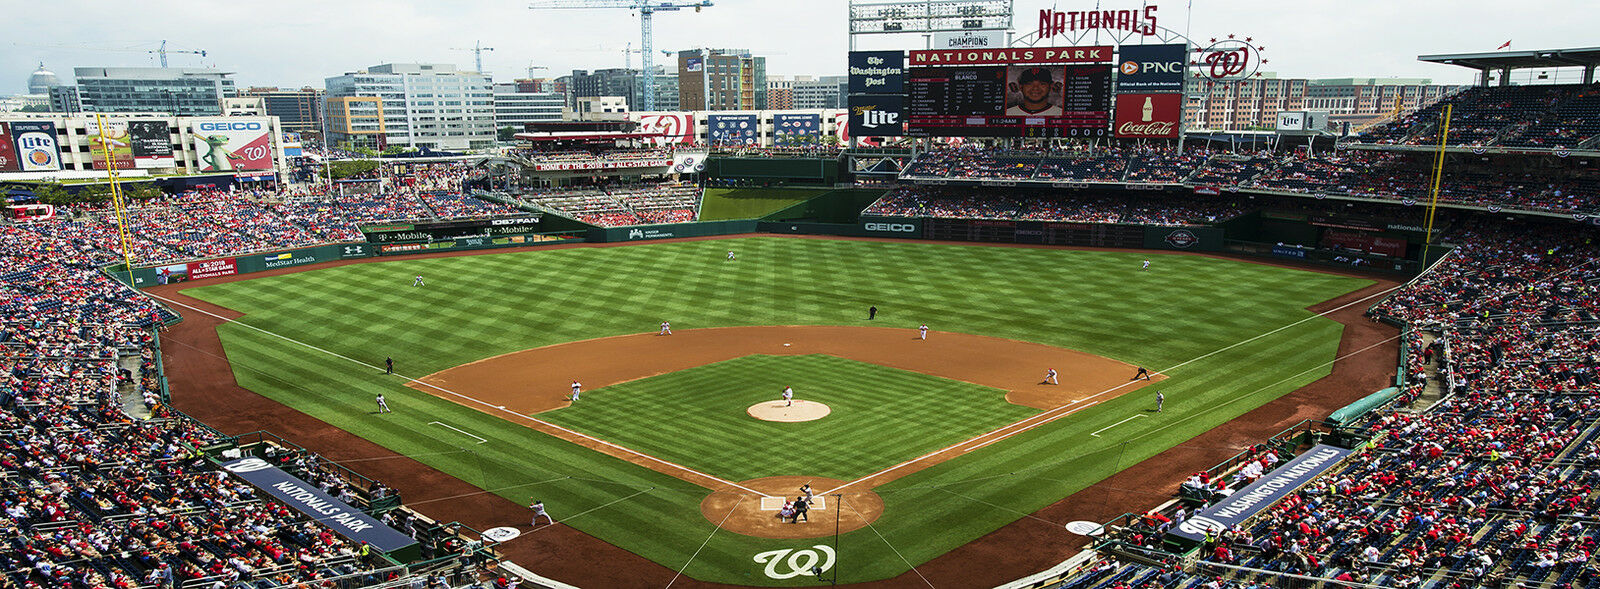 Milwaukee Brewers at Washington Nationals Tickets (Nationals Fedora Giveaway)